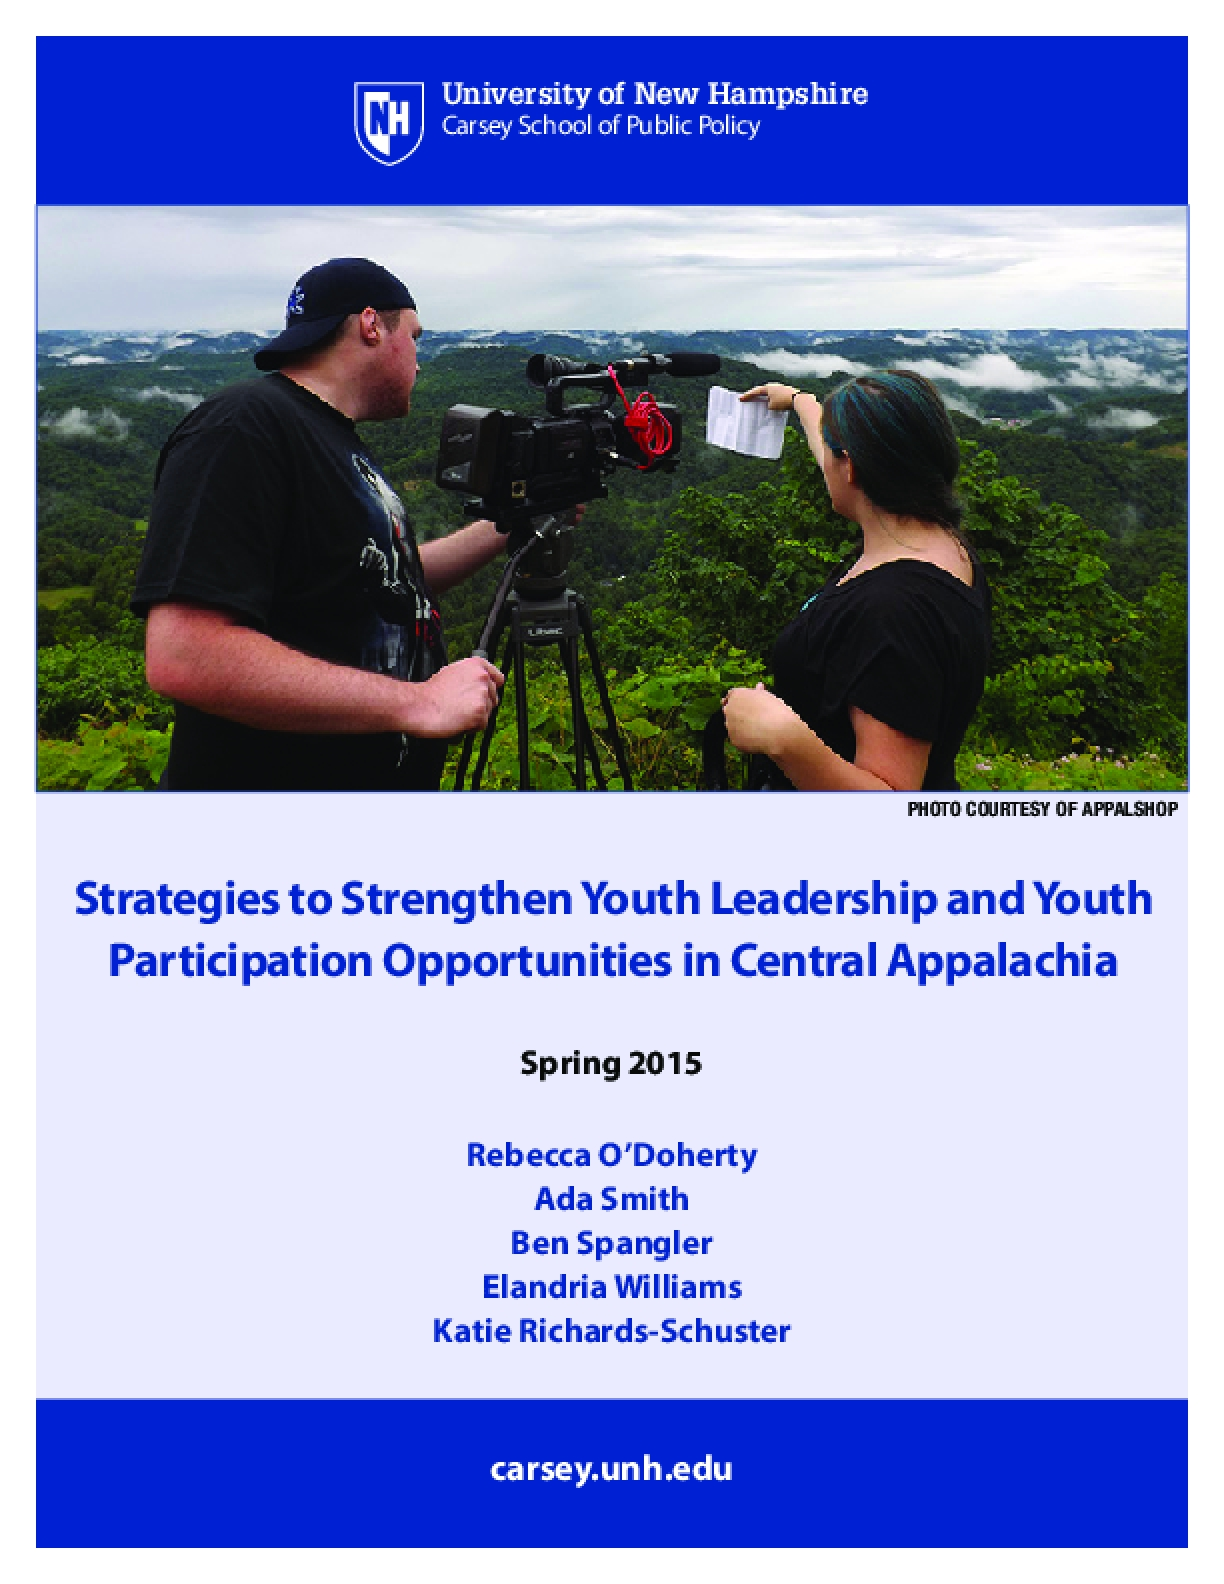 Strategies to Strengthen Youth Leadership and Youth Participation Opportunities in Central Appalachia